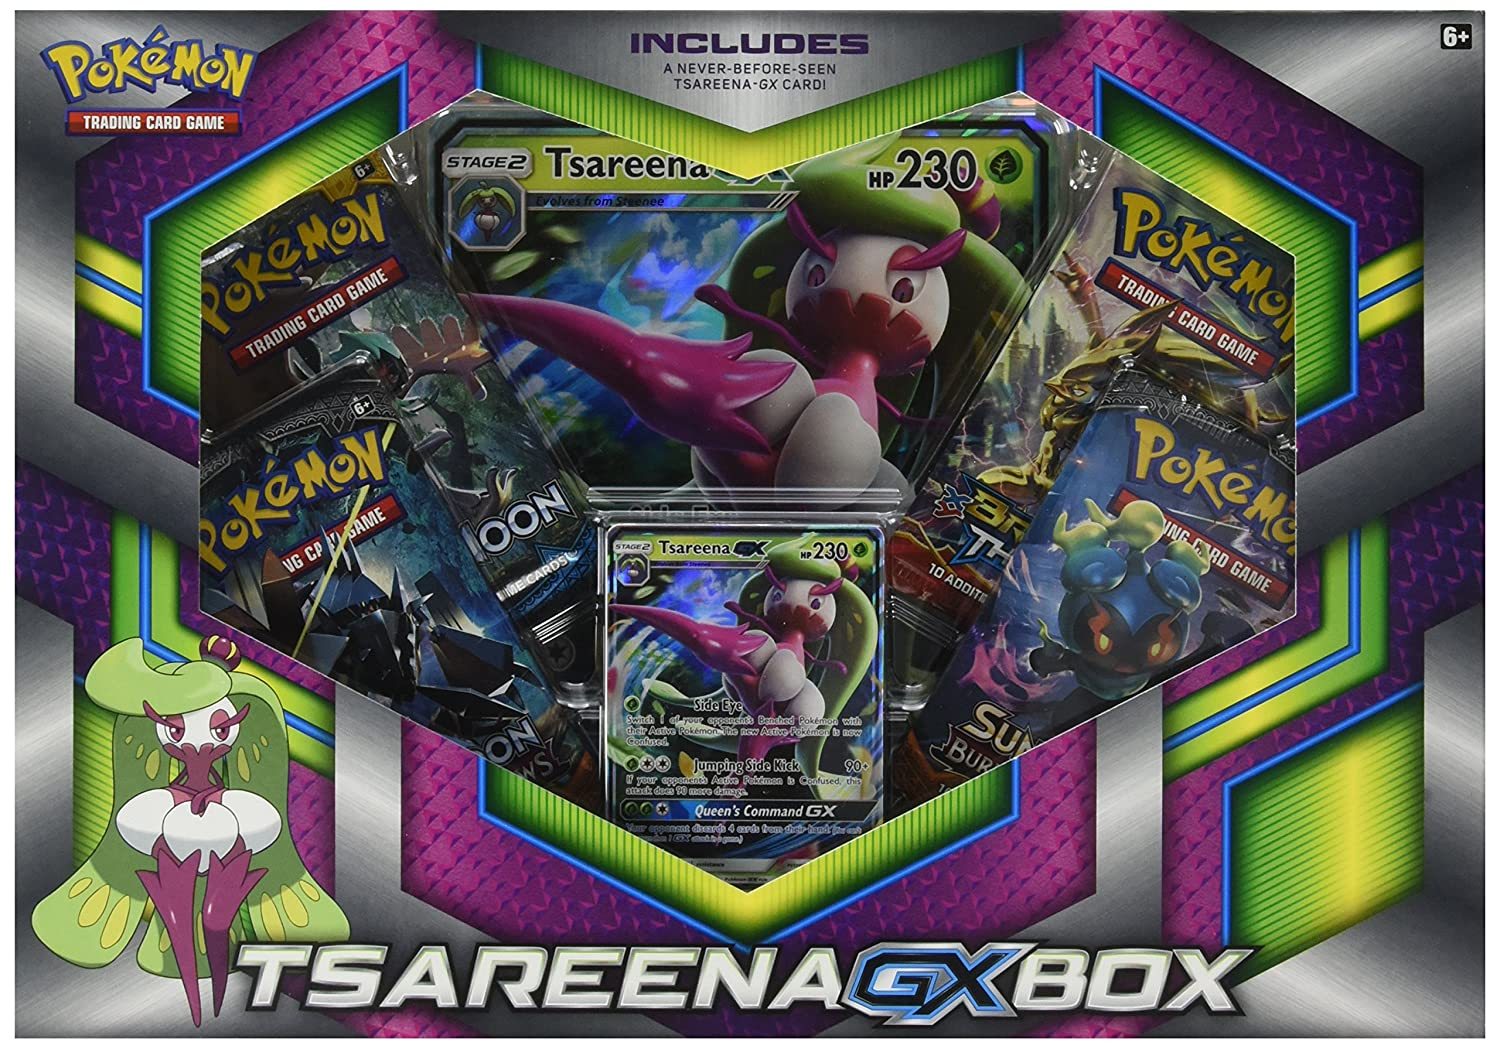 Pokemon Tsareena-GX Collectible Cards RMAAD 290-80309